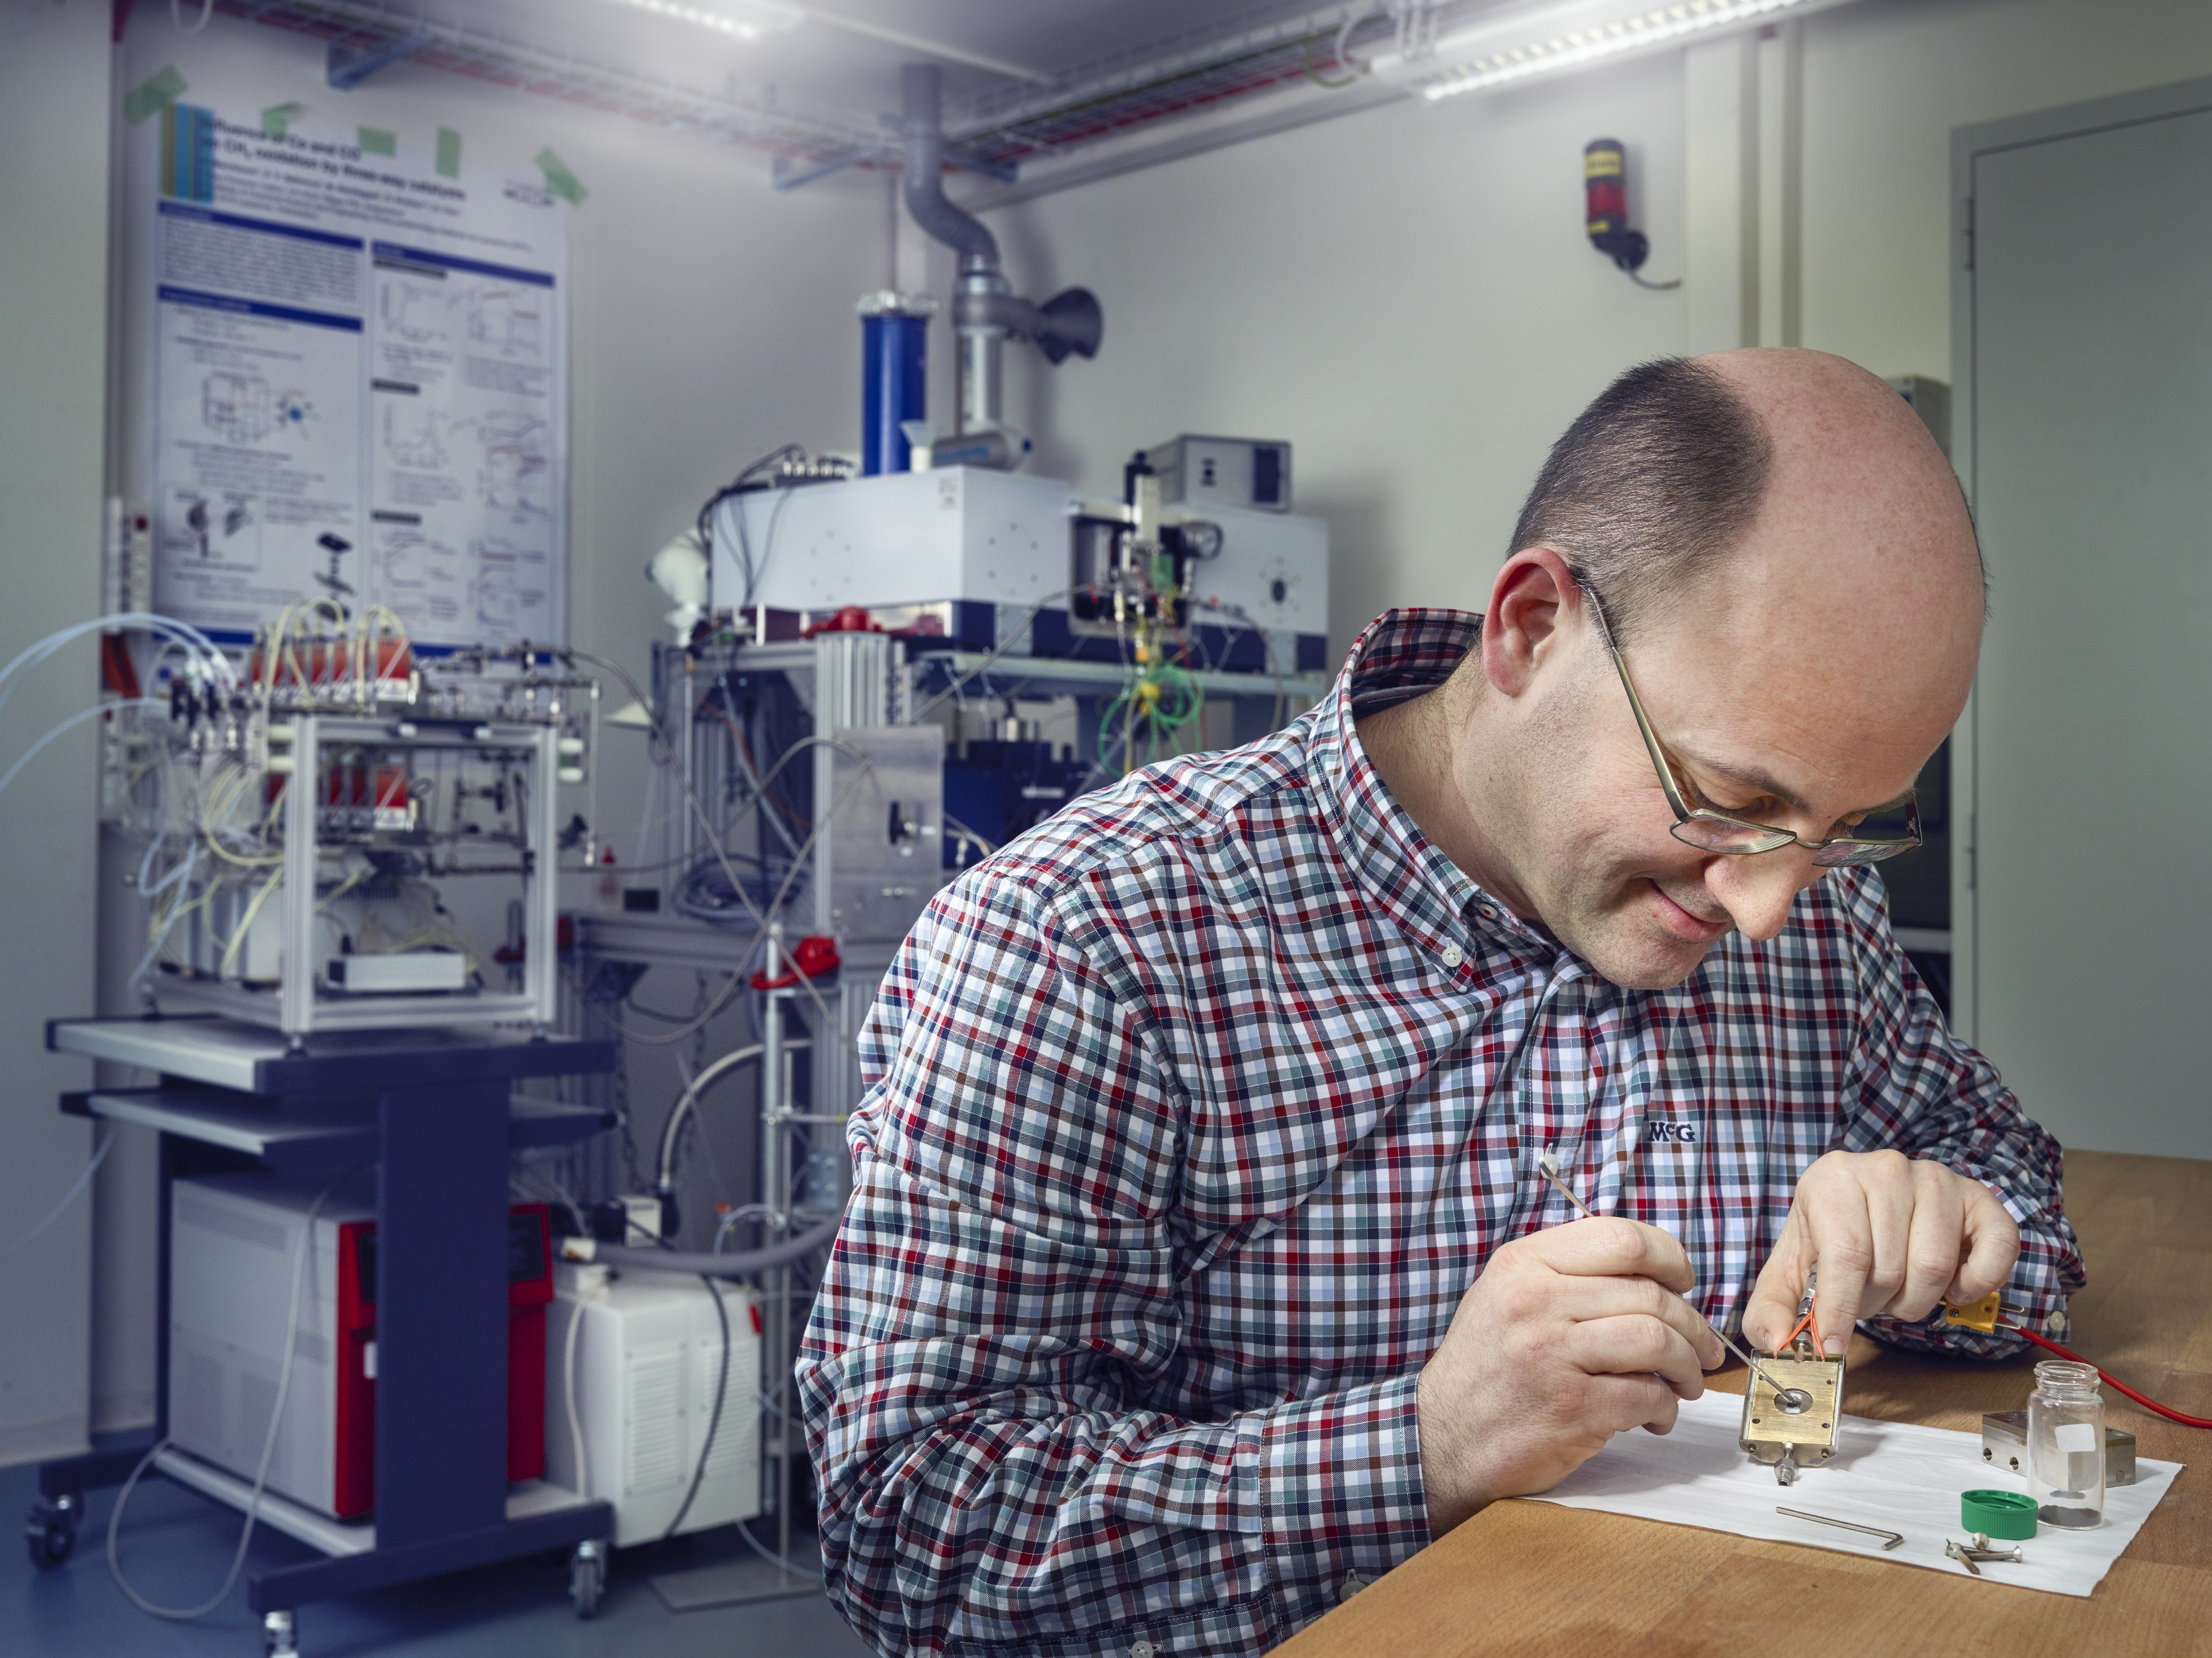 Davide Ferri prepares a catalyst sample in the measurement chamber. Afterwards the chamber will be mounted in the instrument visible in the background or moved to a beamline and probed there with synchrotron light. (Photo: Scanderbeg Sauer Photography)